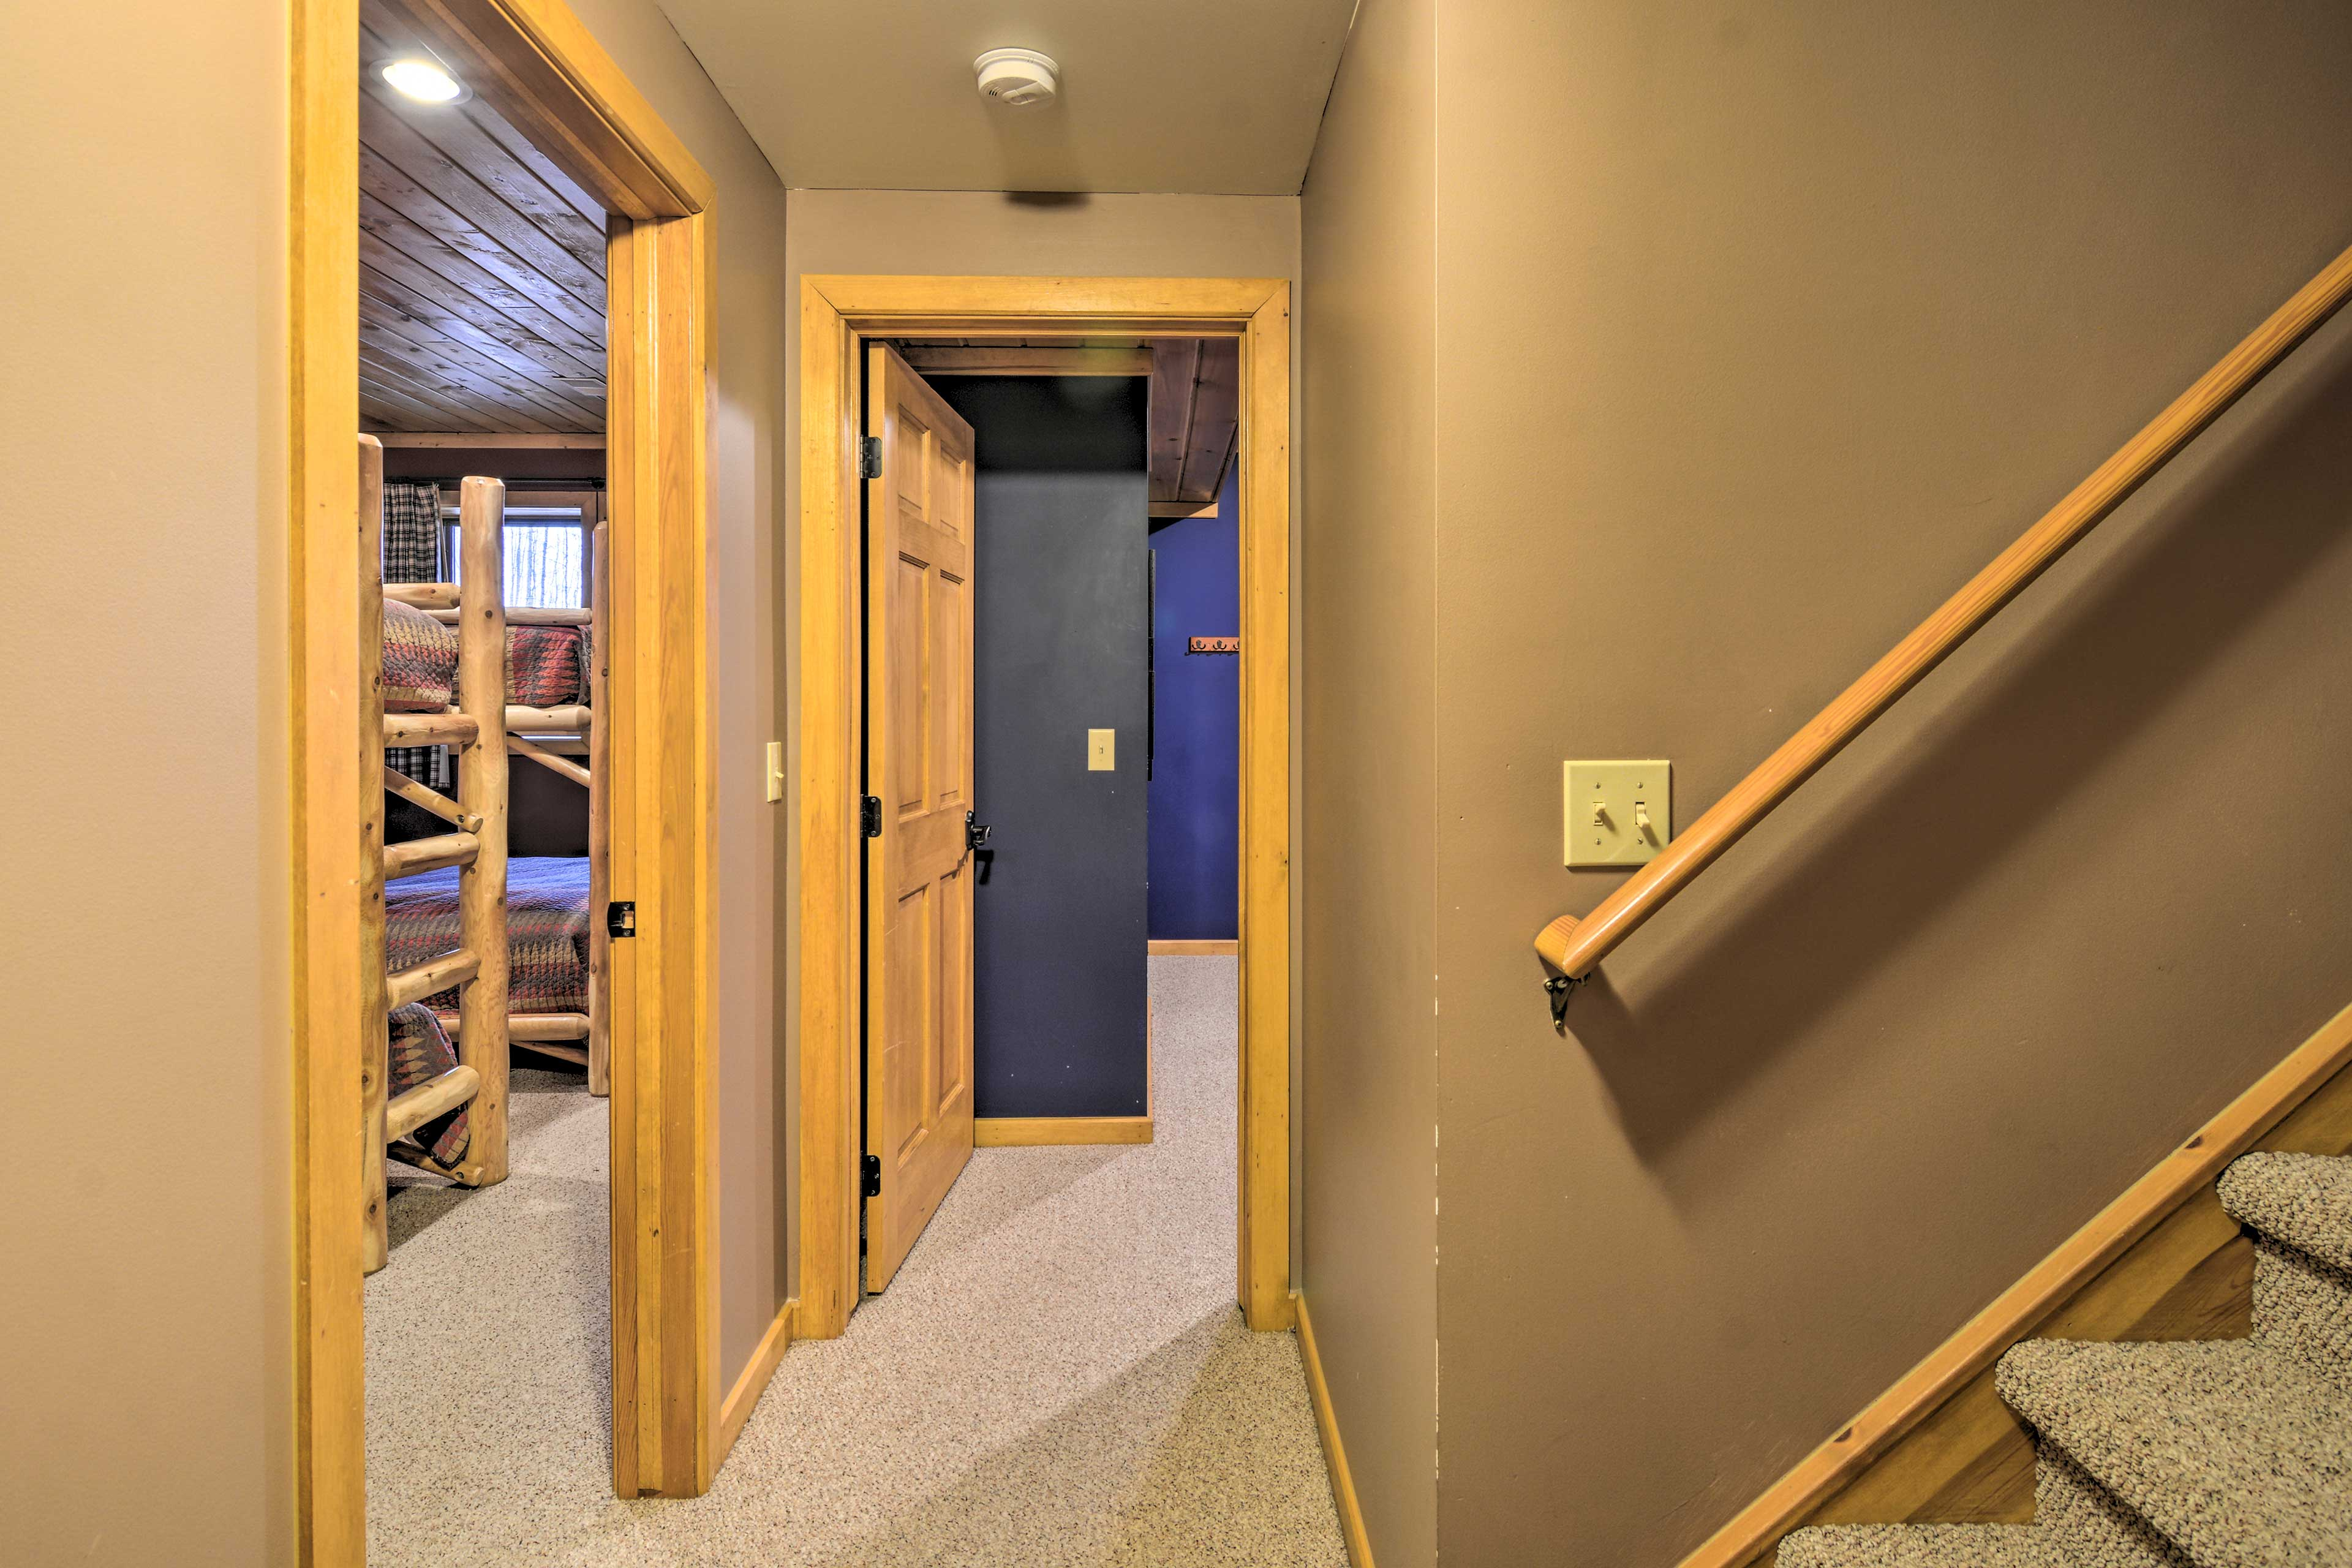 Downstairs, you'll find additional sleeping arrangements.